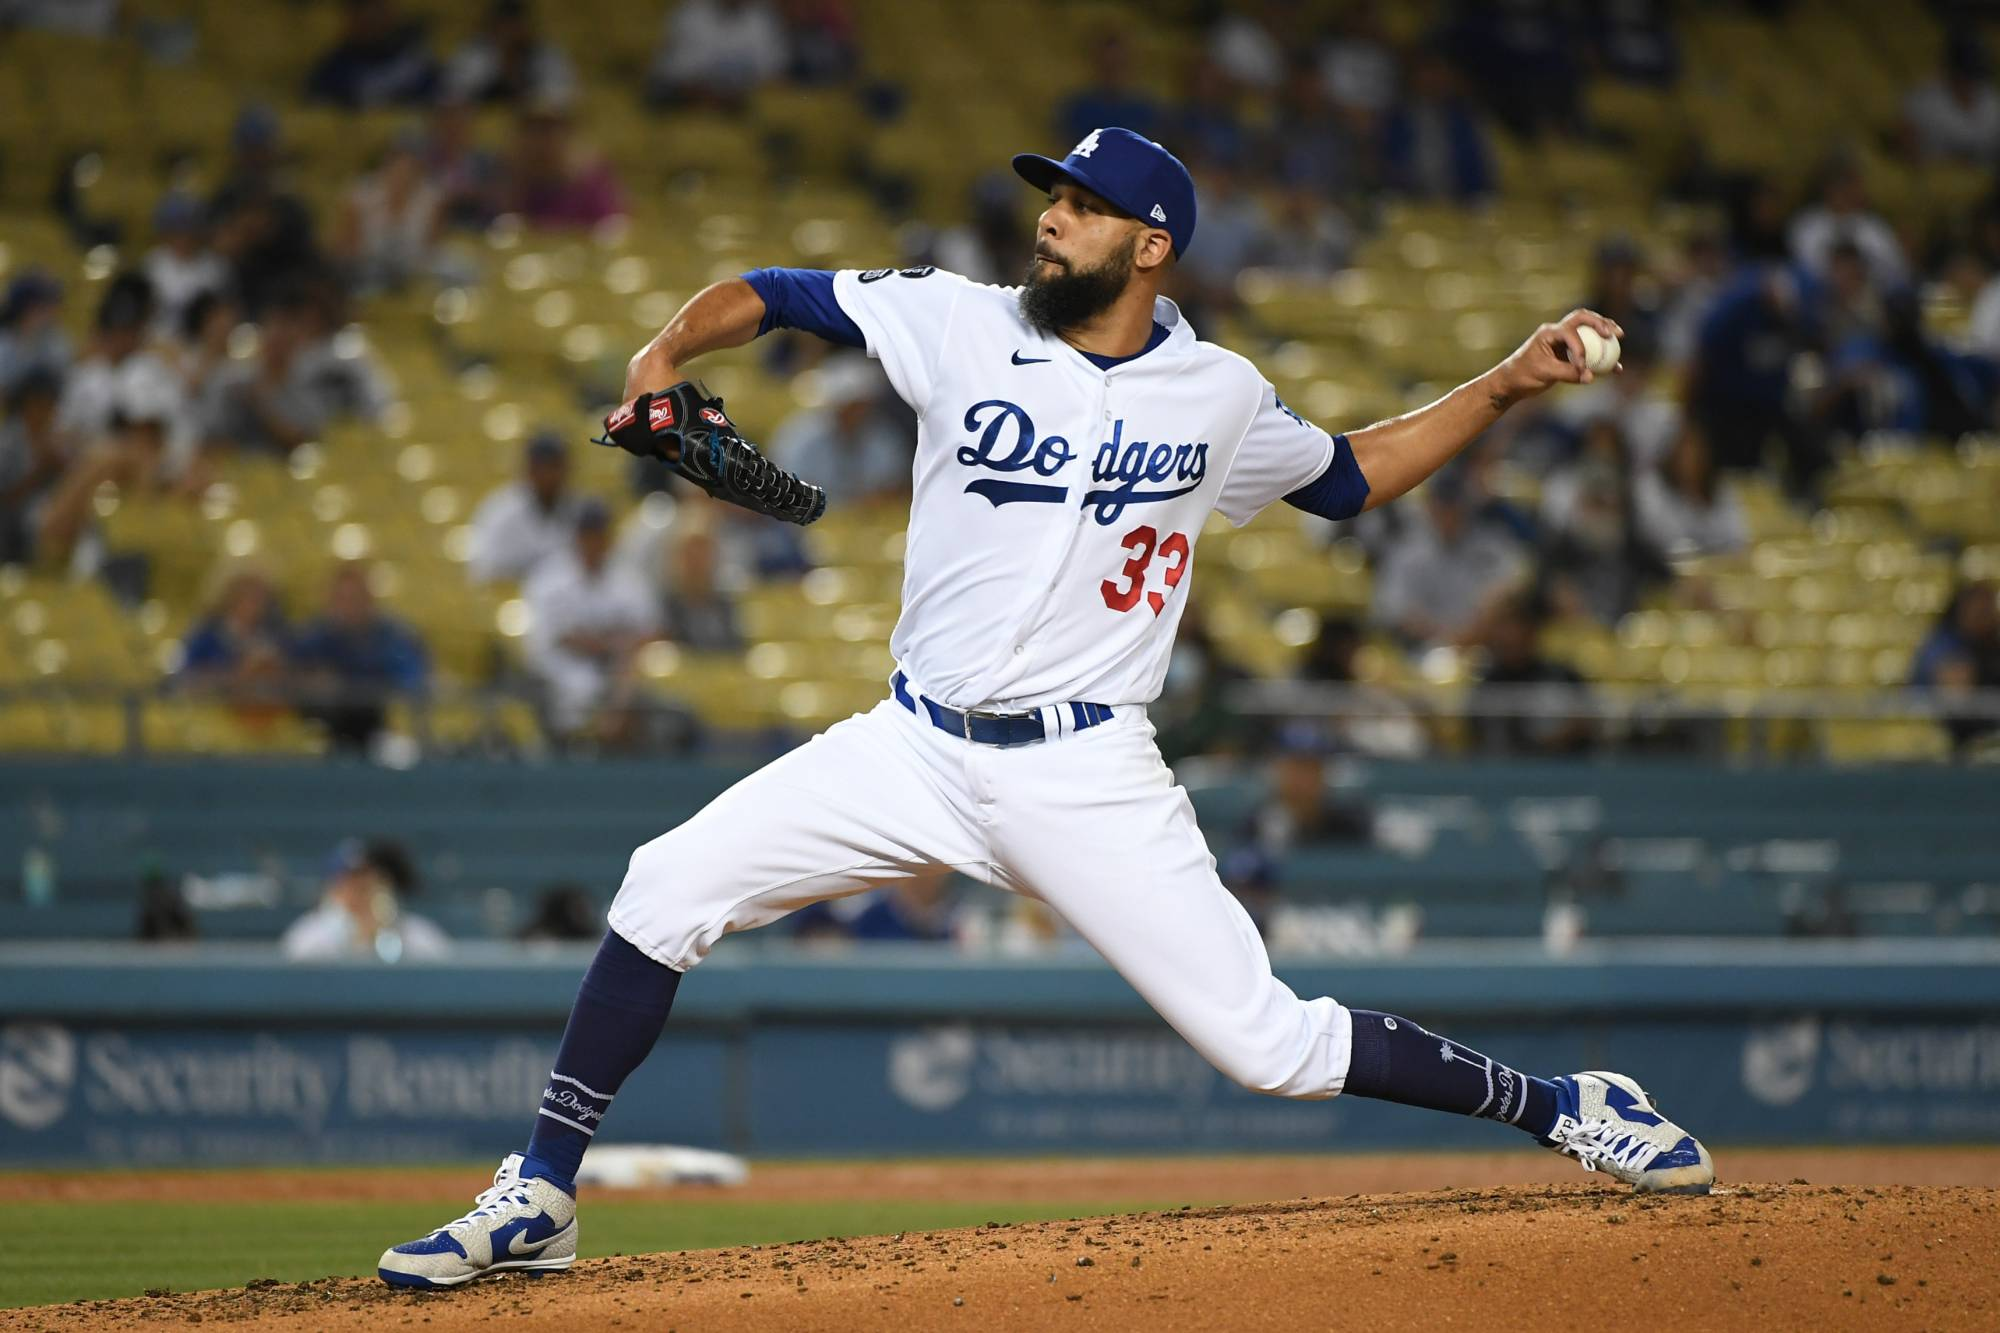 Pitchers may receive nearly a week to adjust to discontinue the common practice of using sticky substances to create a better grip on the ball before MLB begins enforcing a ban on June 21. | USA TODAY / VIA REUTERS